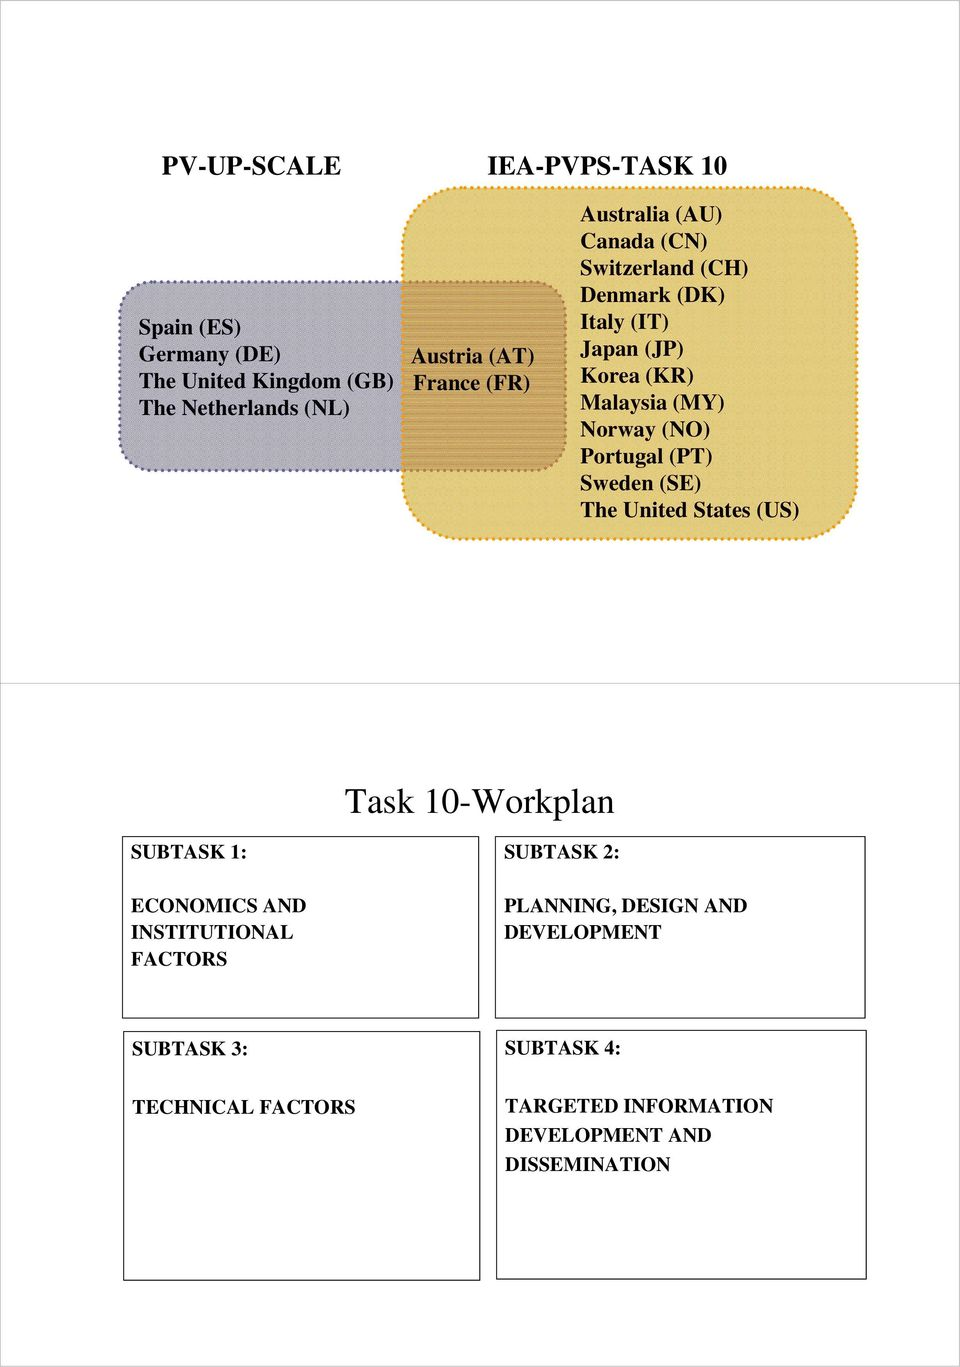 Portugal (PT) Sweden (SE) The United States (US) Task 10-Workplan SUBTASK 1: SUBTASK 2: ECONOMICS AND INSTITUTIONAL